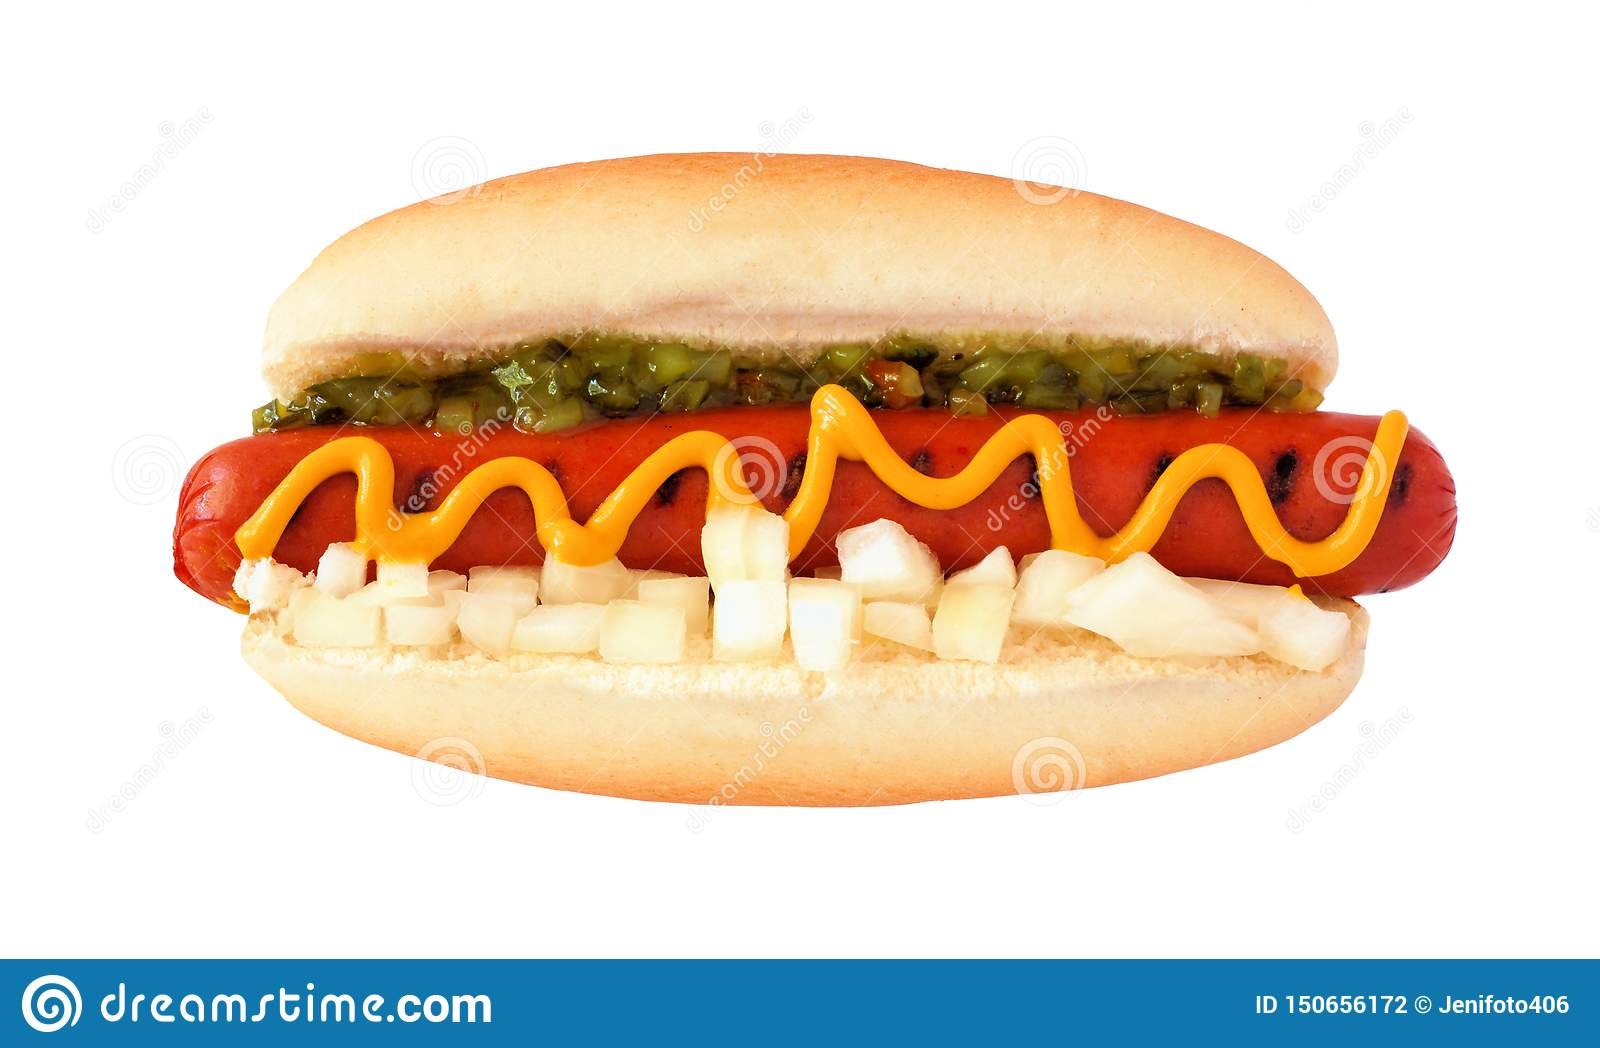 Hot dog with mustard, relish and onions, top view isolated on white